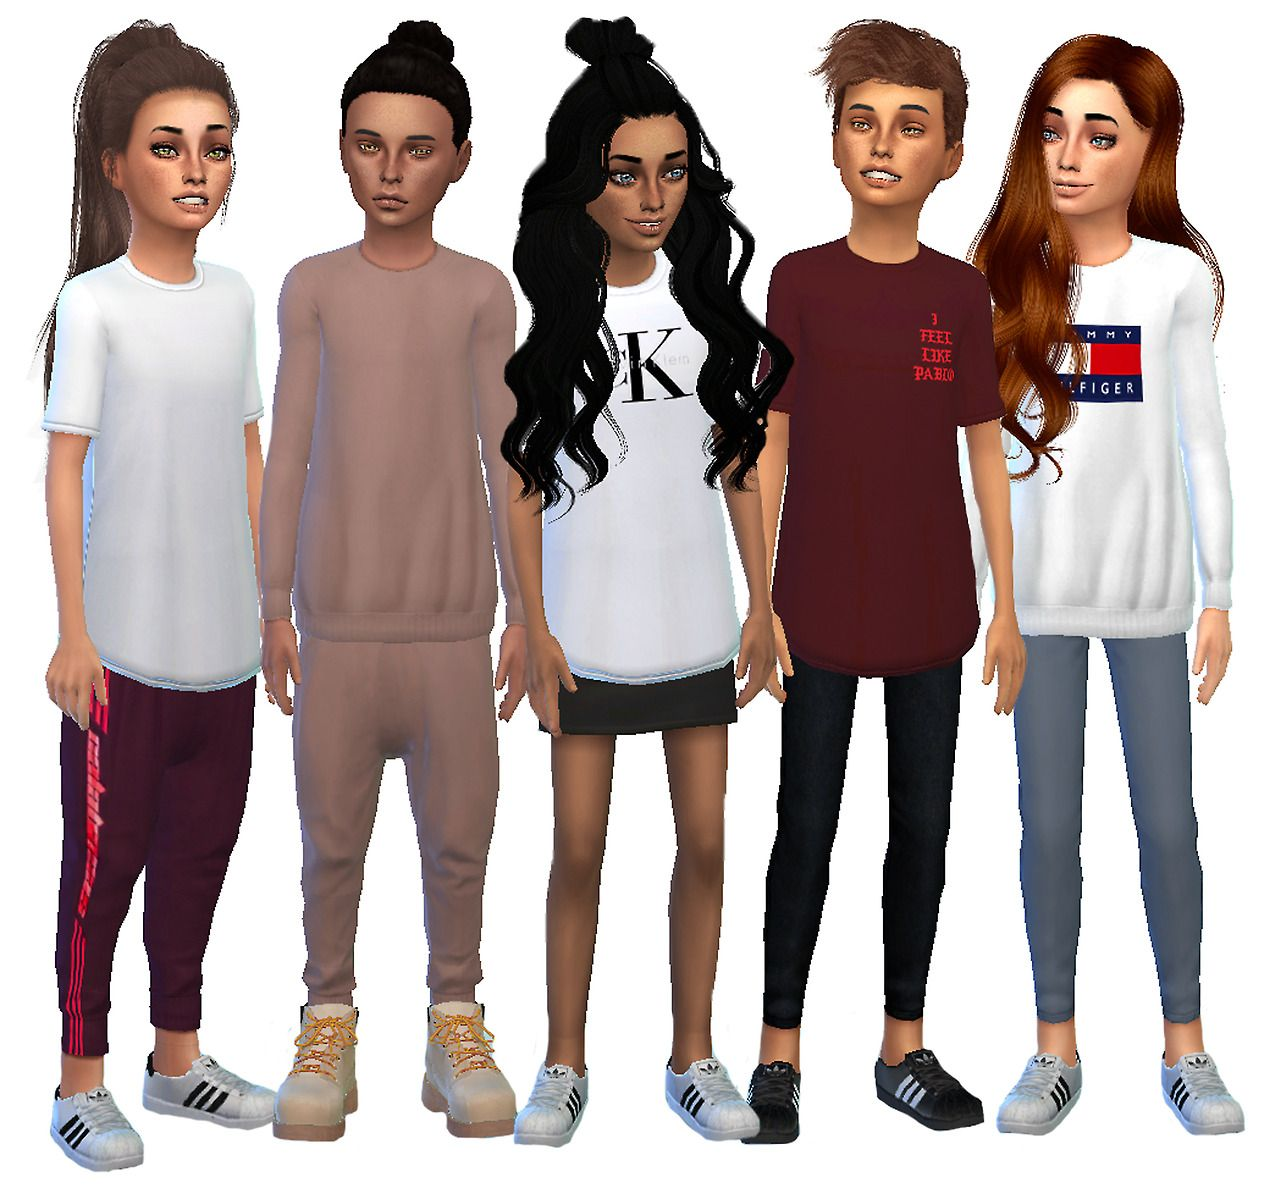 800 Followers Gift Kids Streetwear Collection Sims